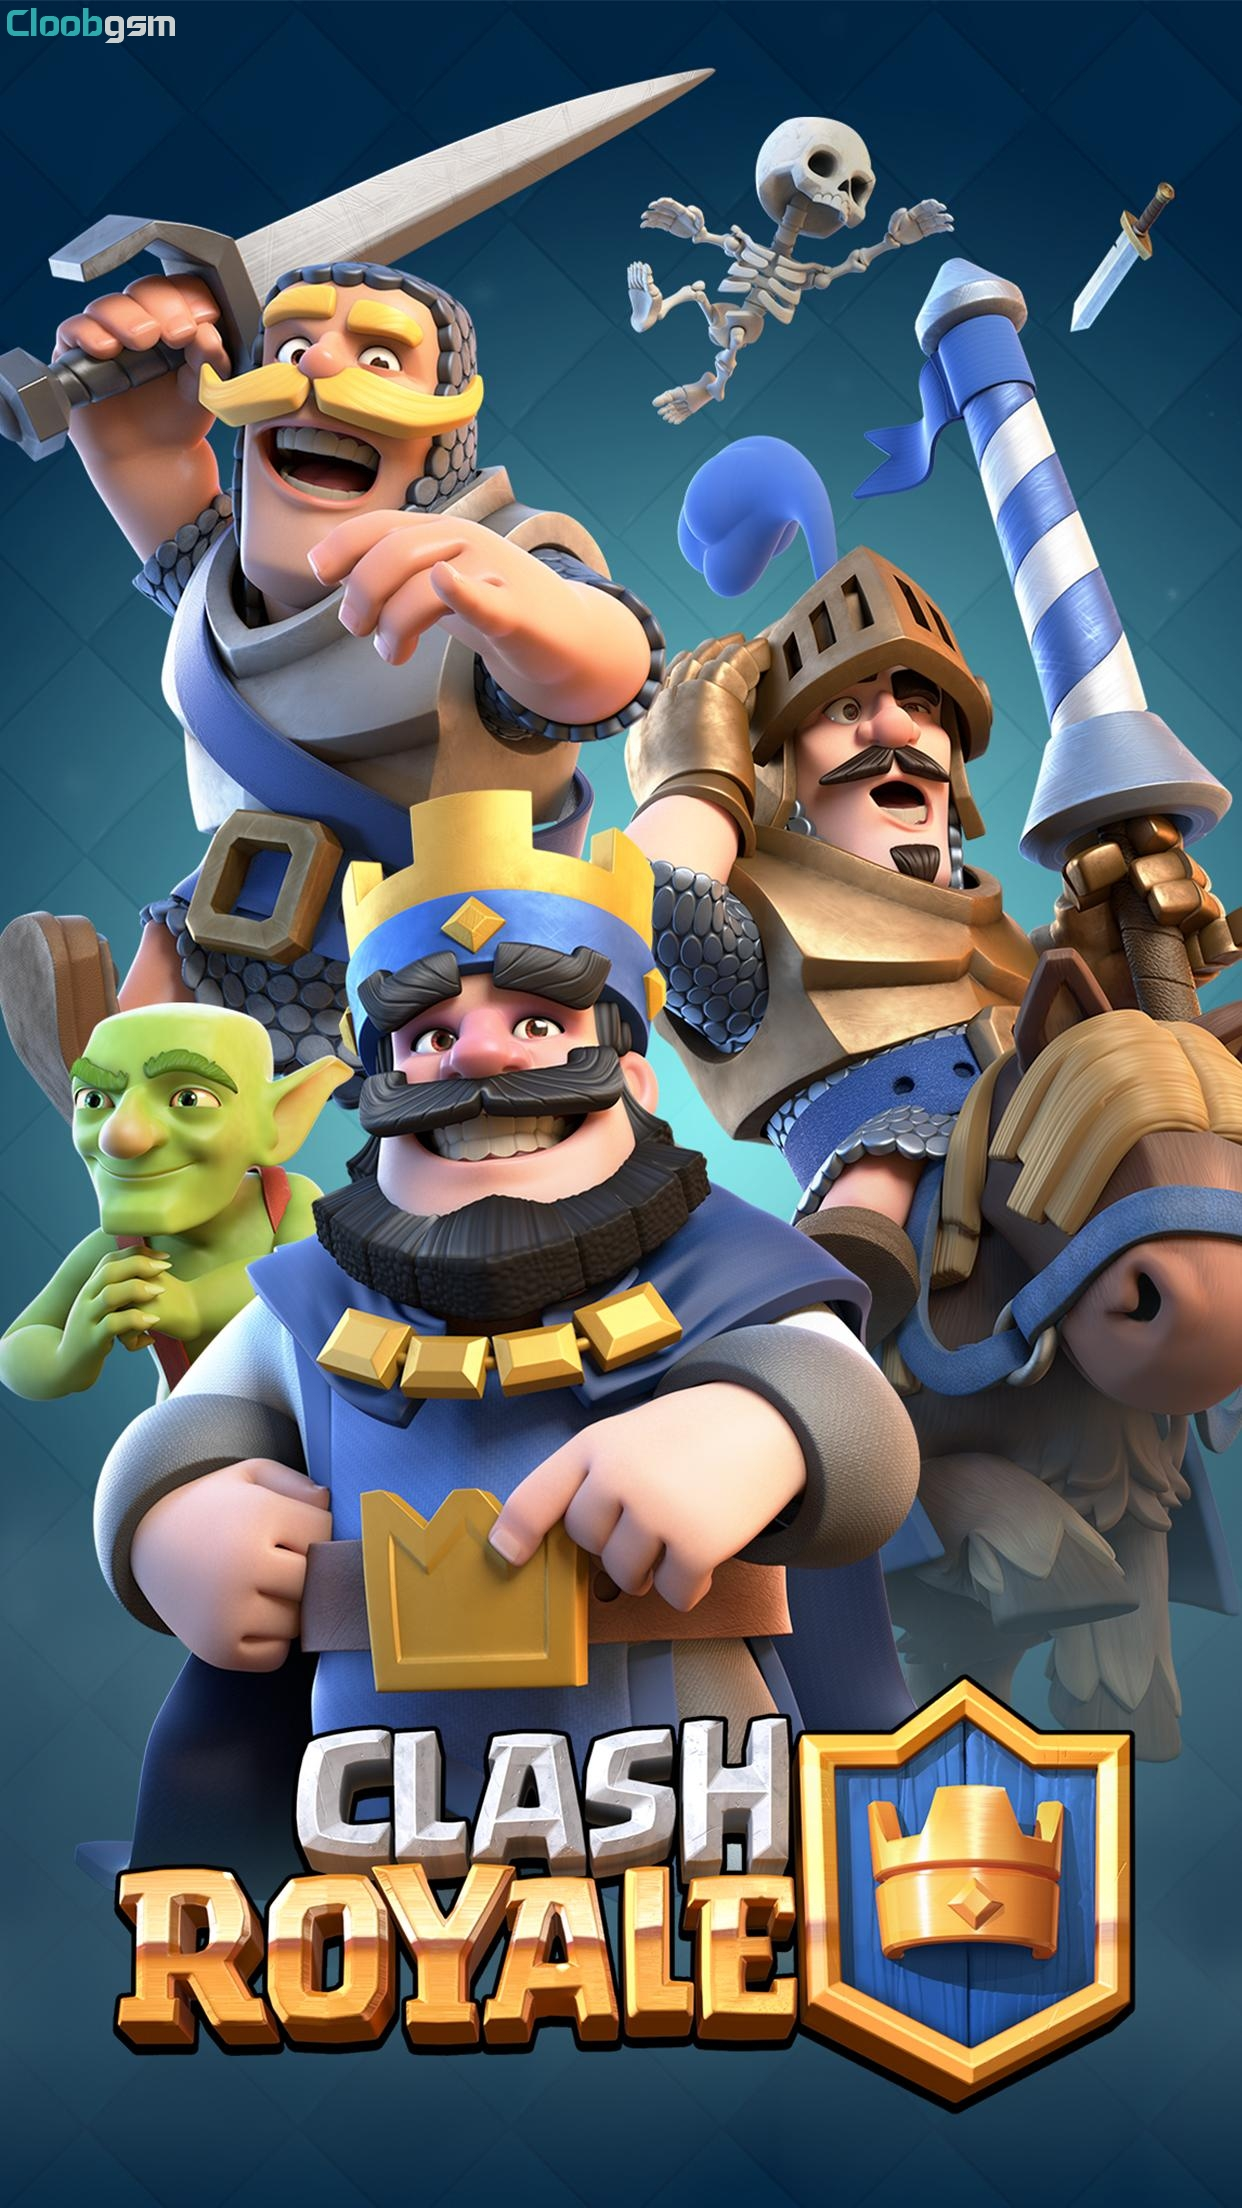 com.supercell.clashroyale-screen-4